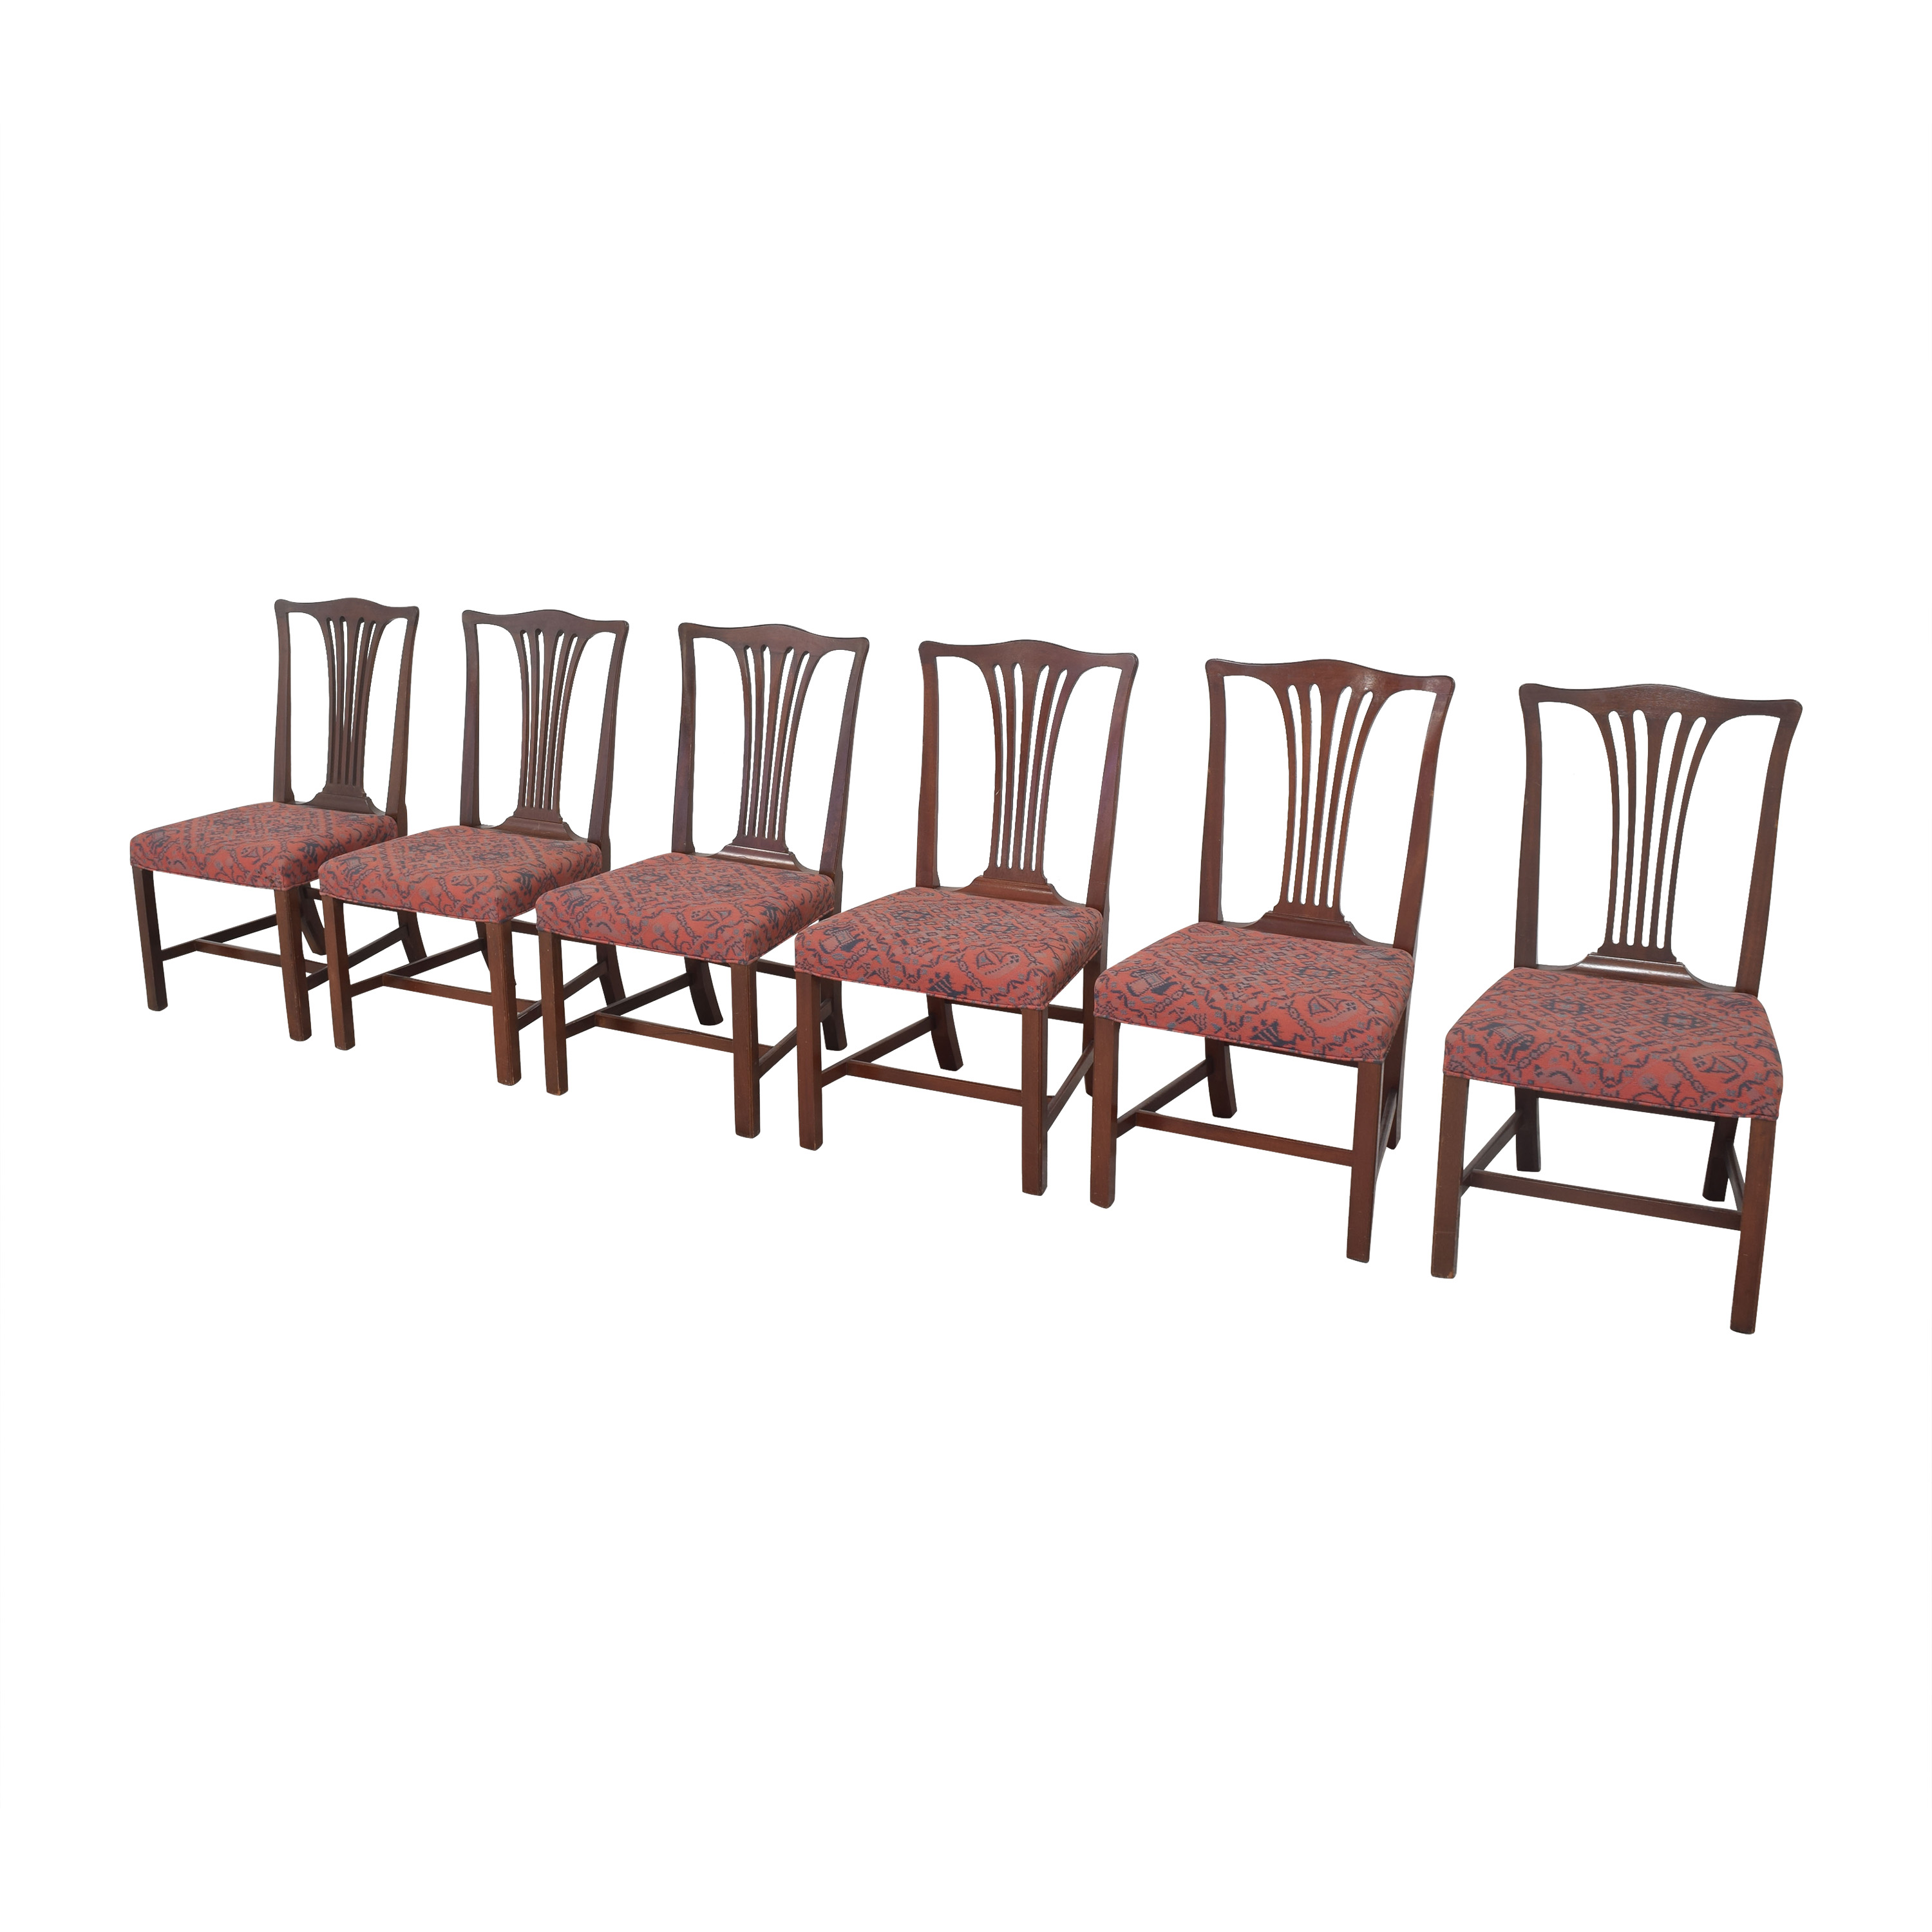 Wood & Hogan Country Chippendale Dining Side Chairs / Chairs